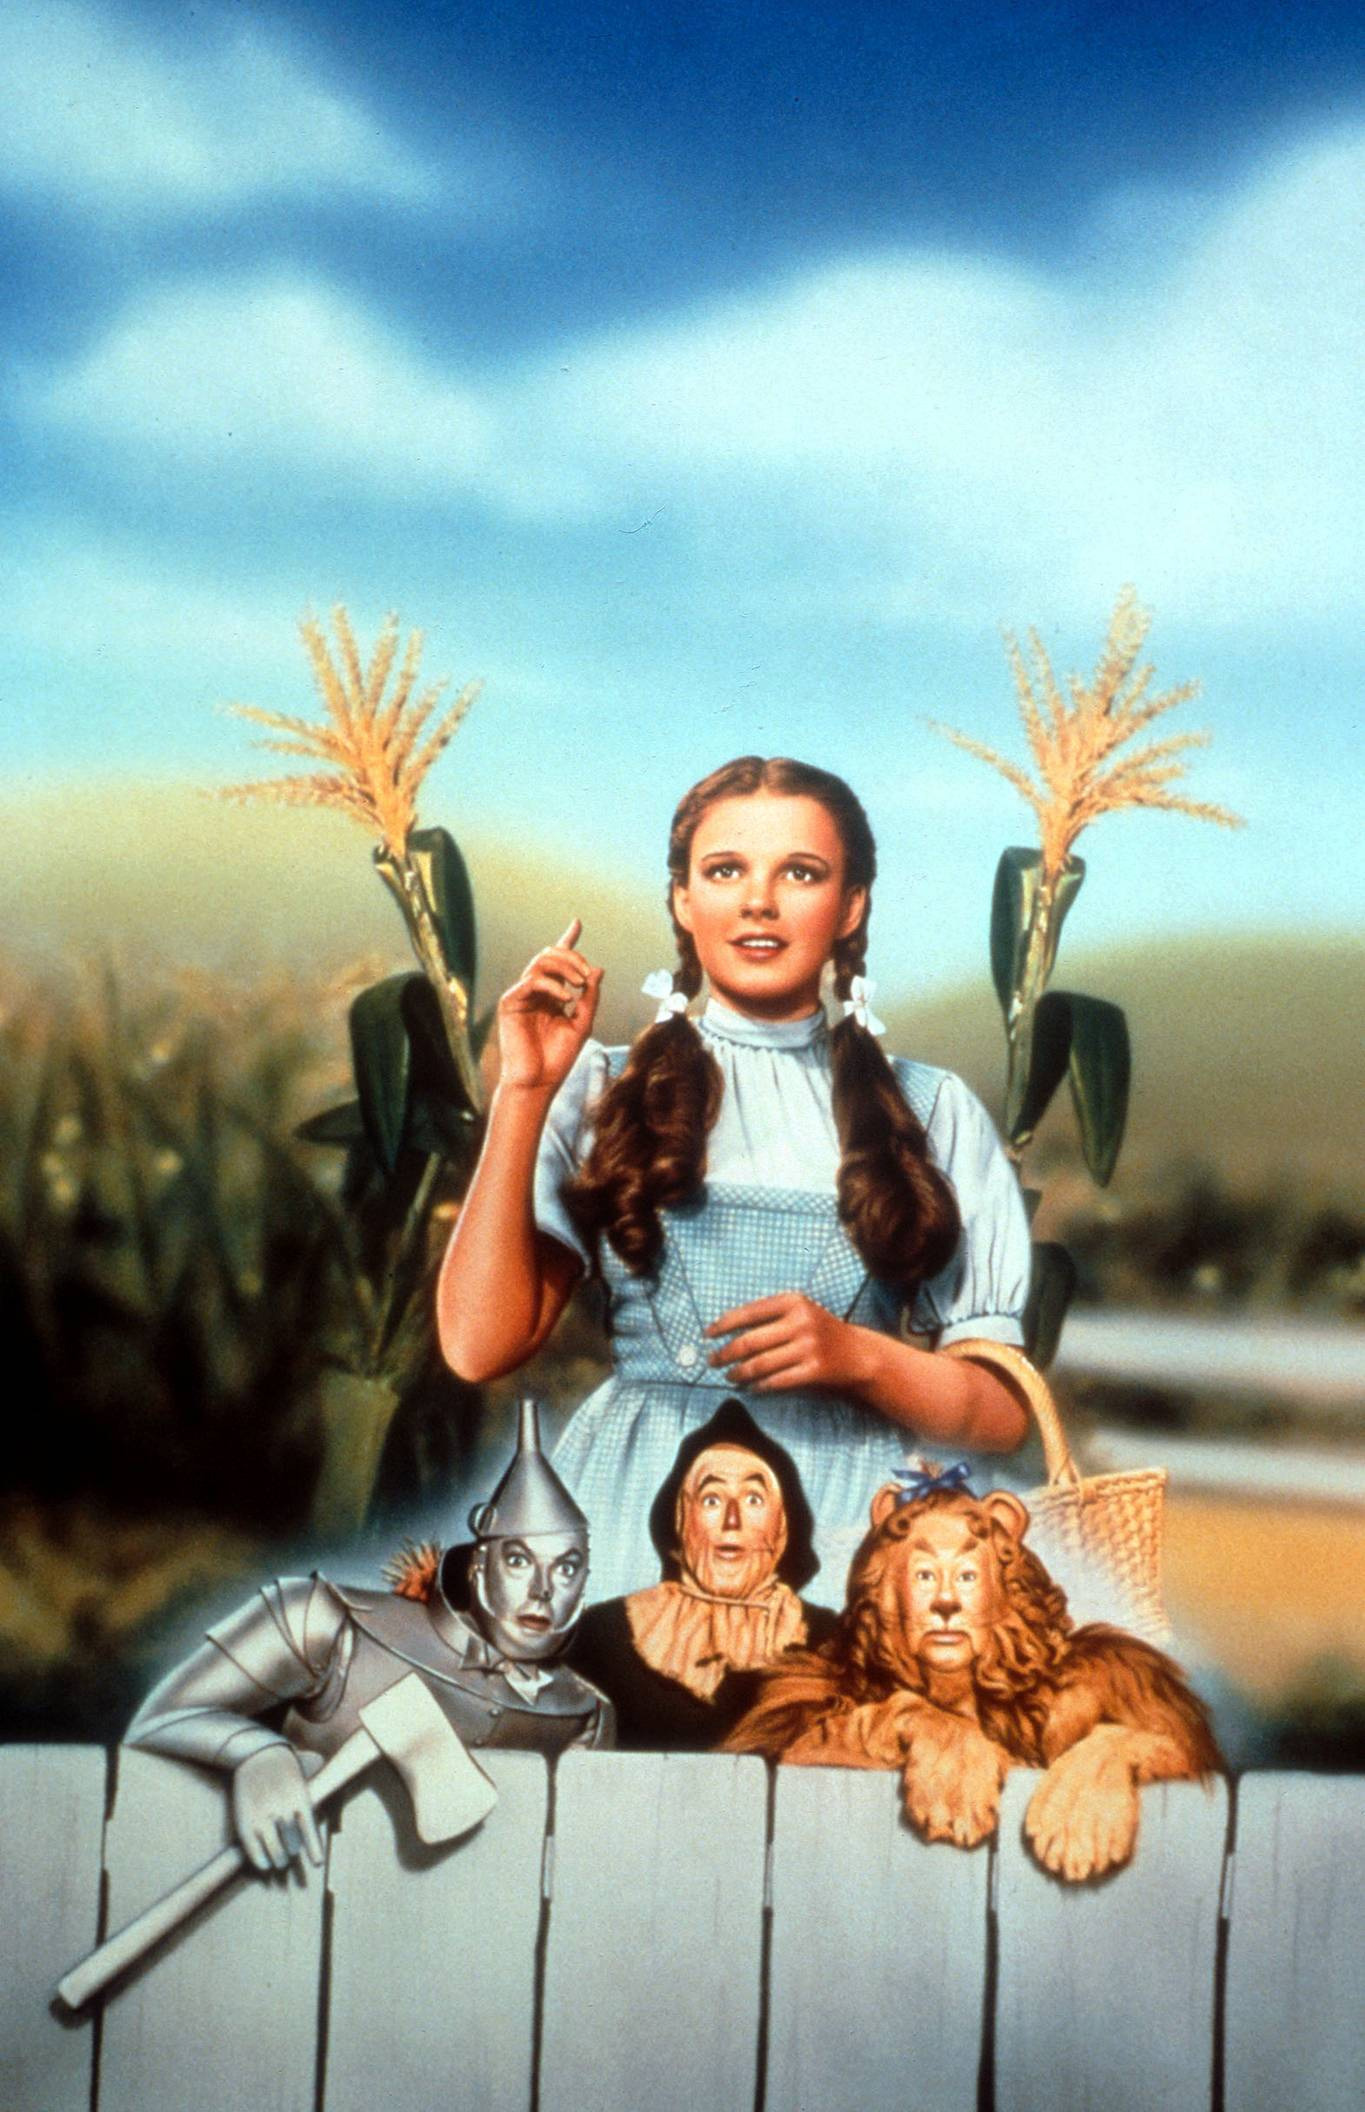 50 Free Wizard Of Oz Wallpaper On Wallpapersafari